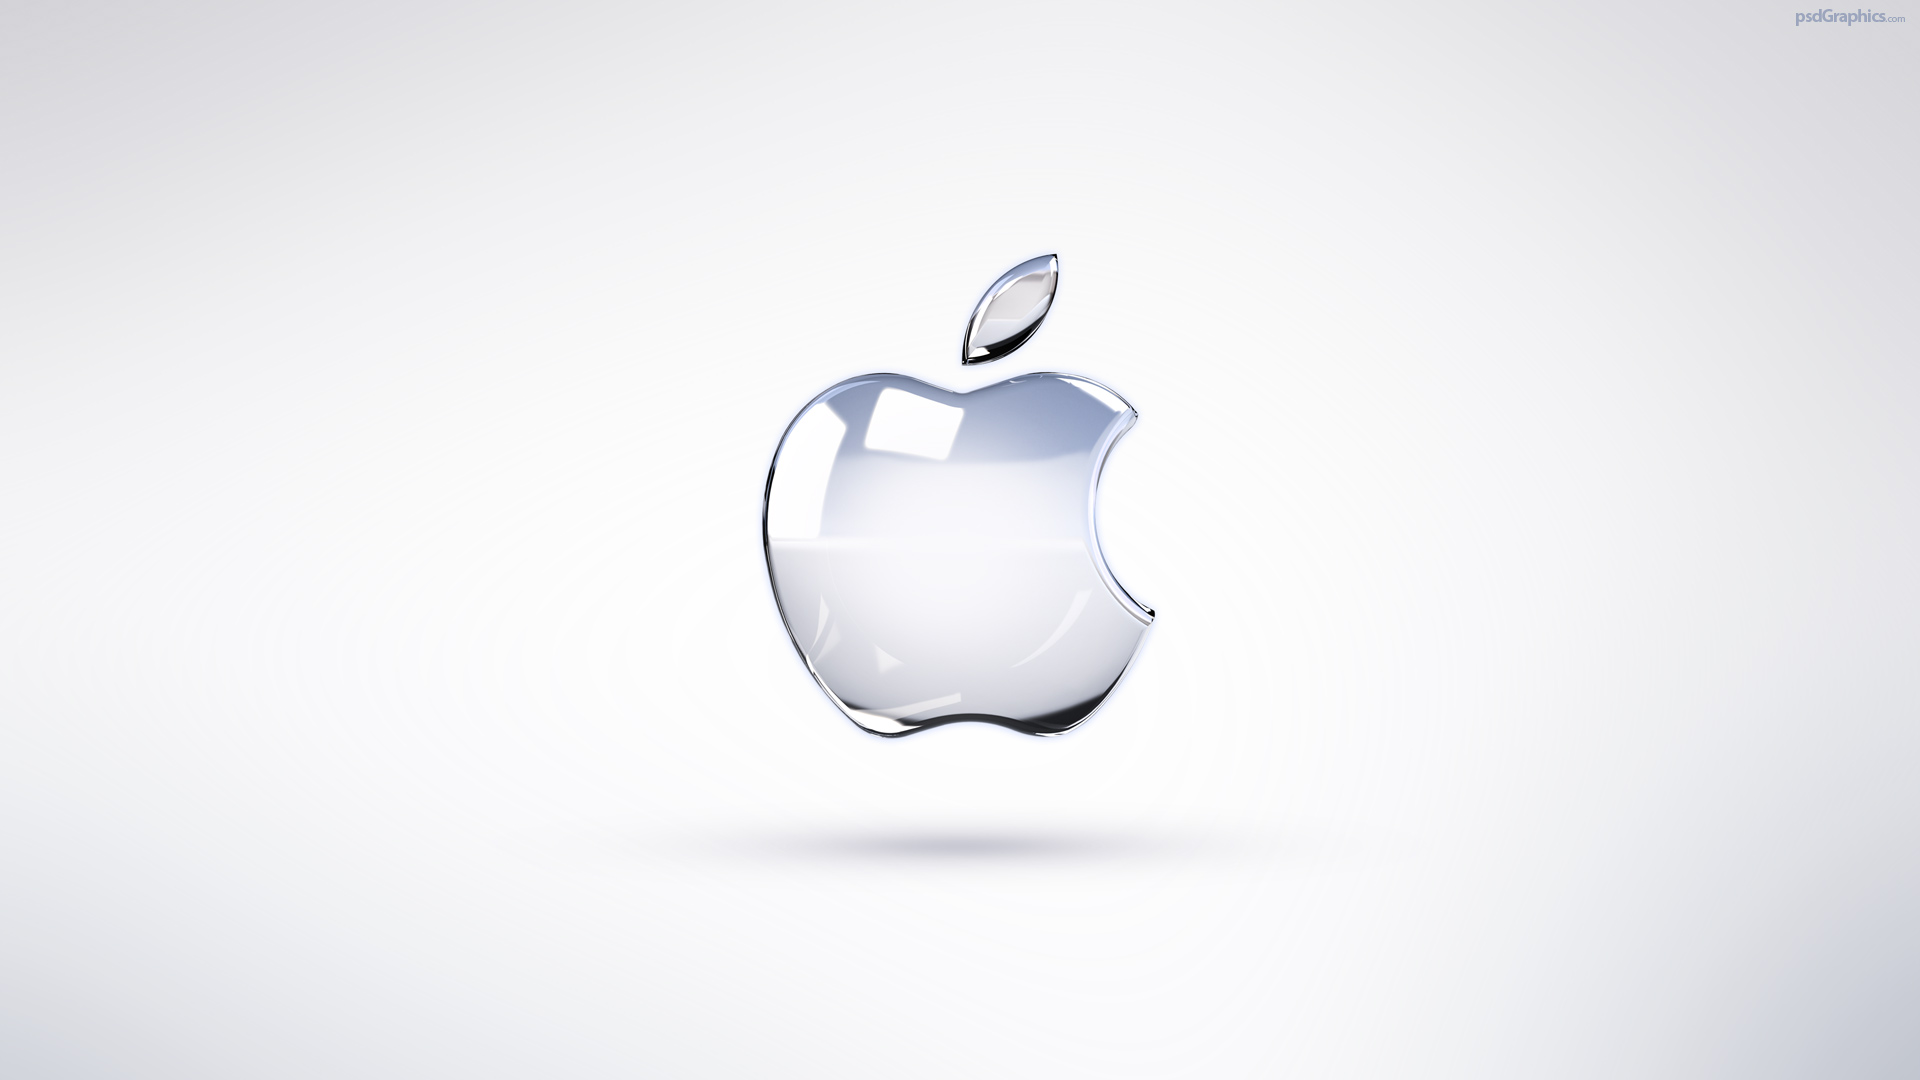 DOWNLOAD DESKTOP BACKGROUND: Apple Background HD 1080p - FULL SIZE ...